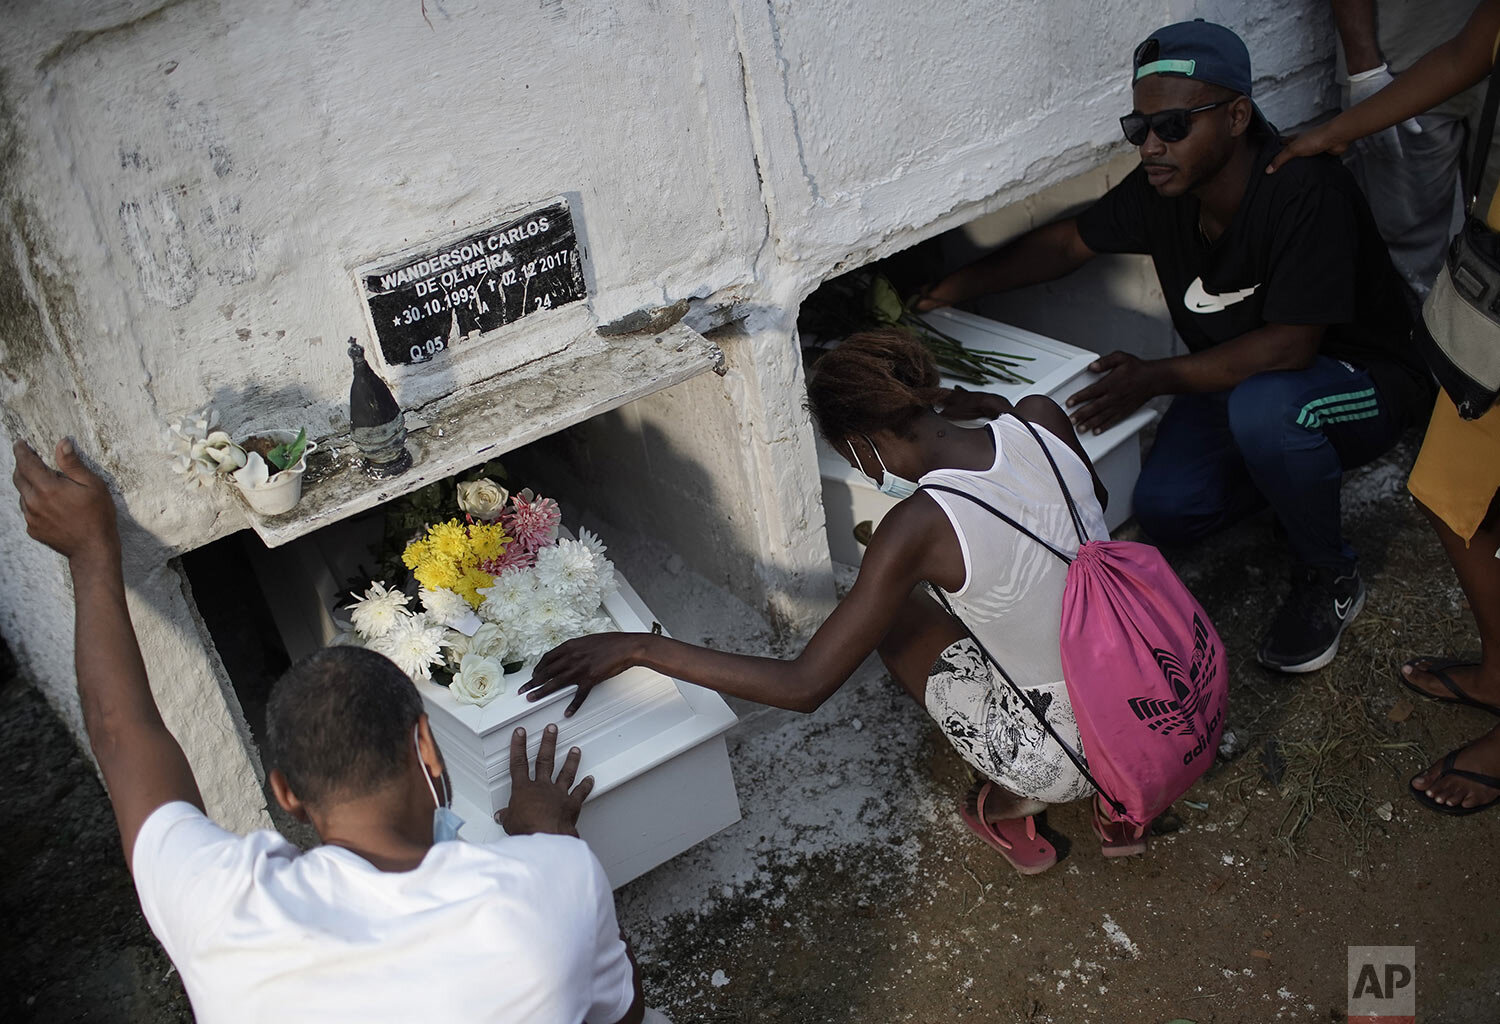 Relatives of cousins Emily Victoria Silva dos Santos, 4, and Rebeca Beatriz Rodrigues dos Santos, 7, kneel by their coffins as they bury the cousins in Duque de Caxias, Rio de Janeiro state, Brazil, Saturday, Dec. 5, 2020. Grieving families held funerals for the girls killed by bullets while playing outside their homes. (AP Photo/Silvia Izquierdo)